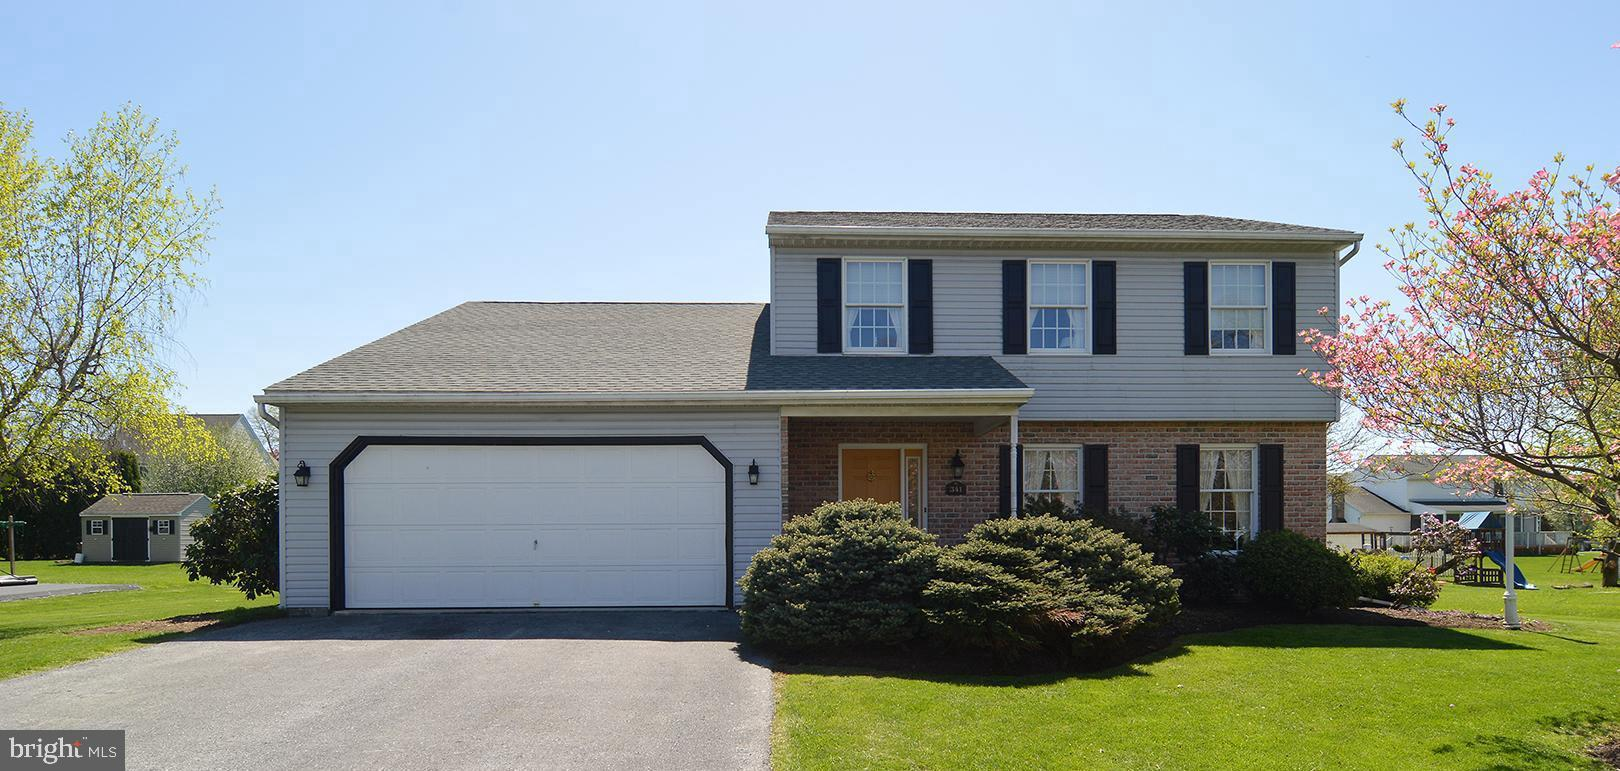 341 W WALNUT TREE DRIVE, BLANDON, PA 19510